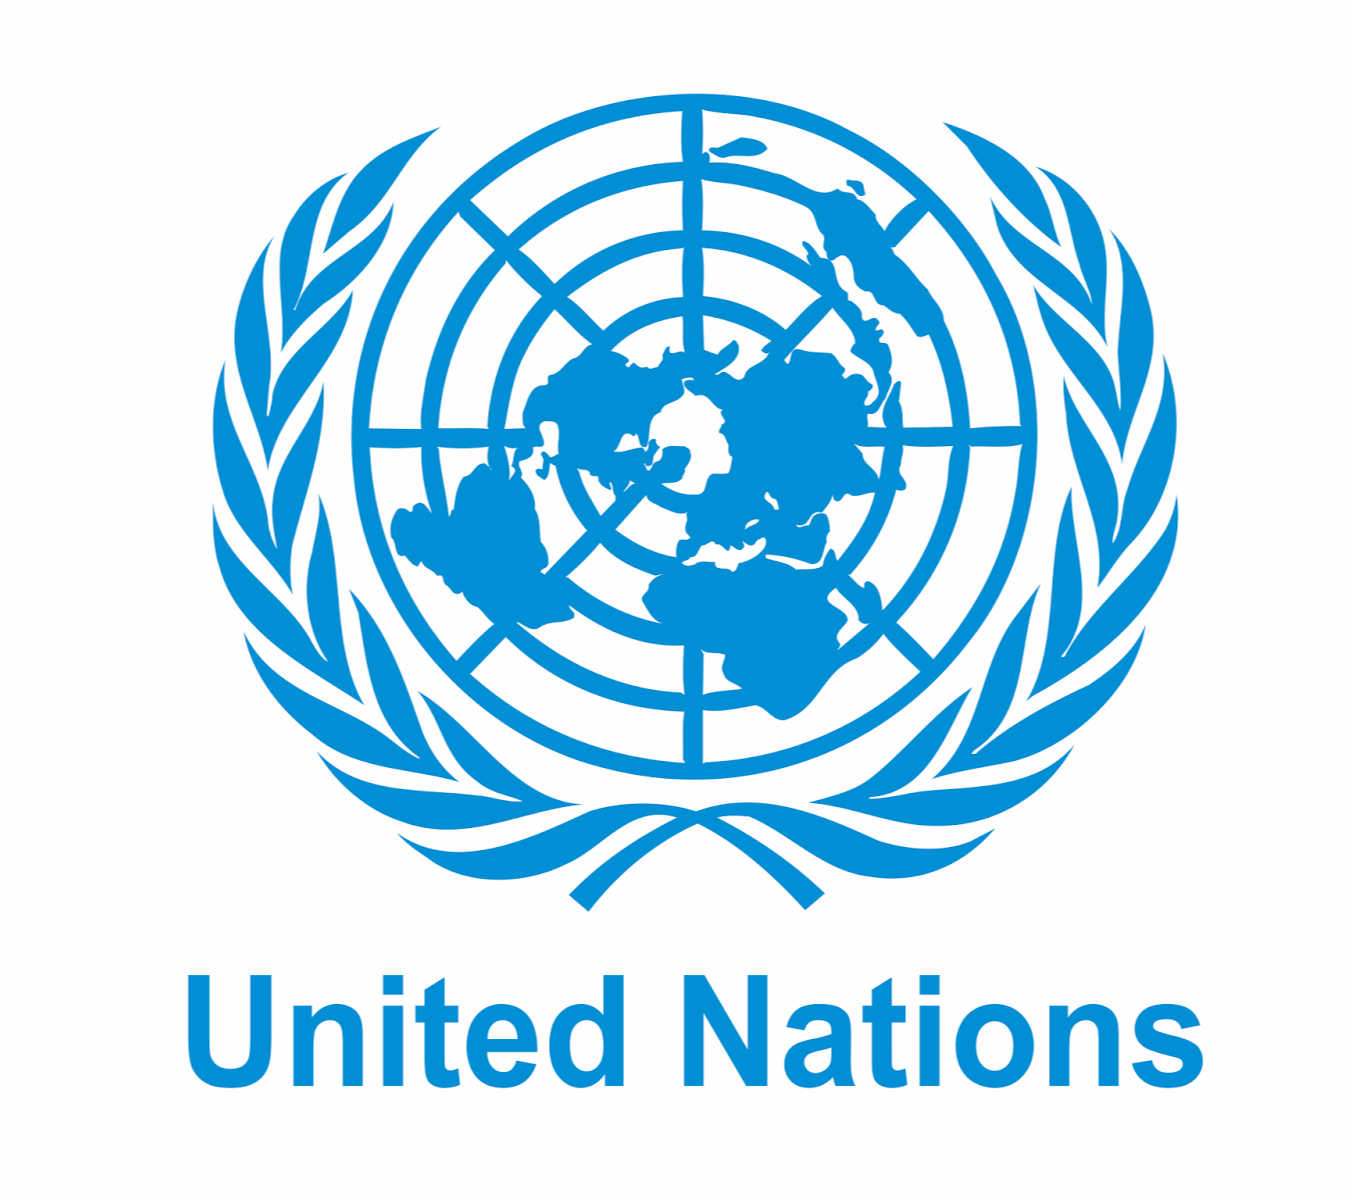 Sant Rajinder Singh United Nations